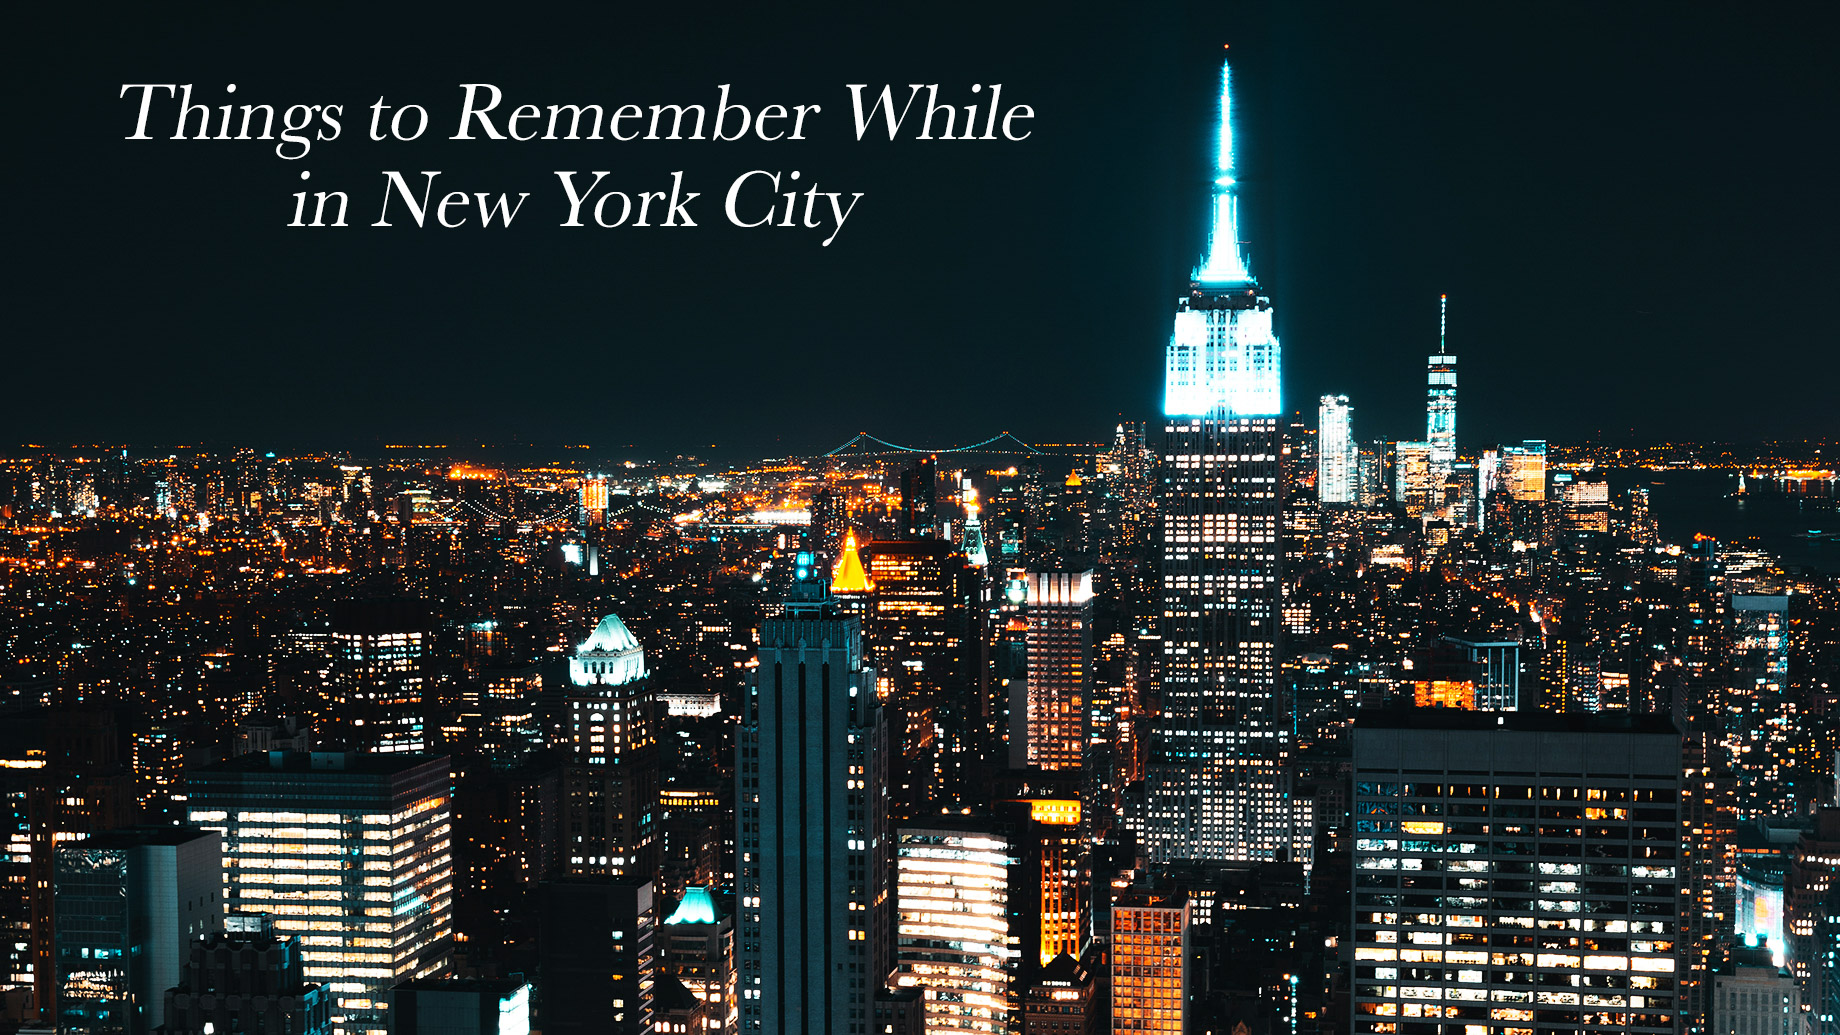 Travelling from Vancouver to New York City - Things to Remember While in New York